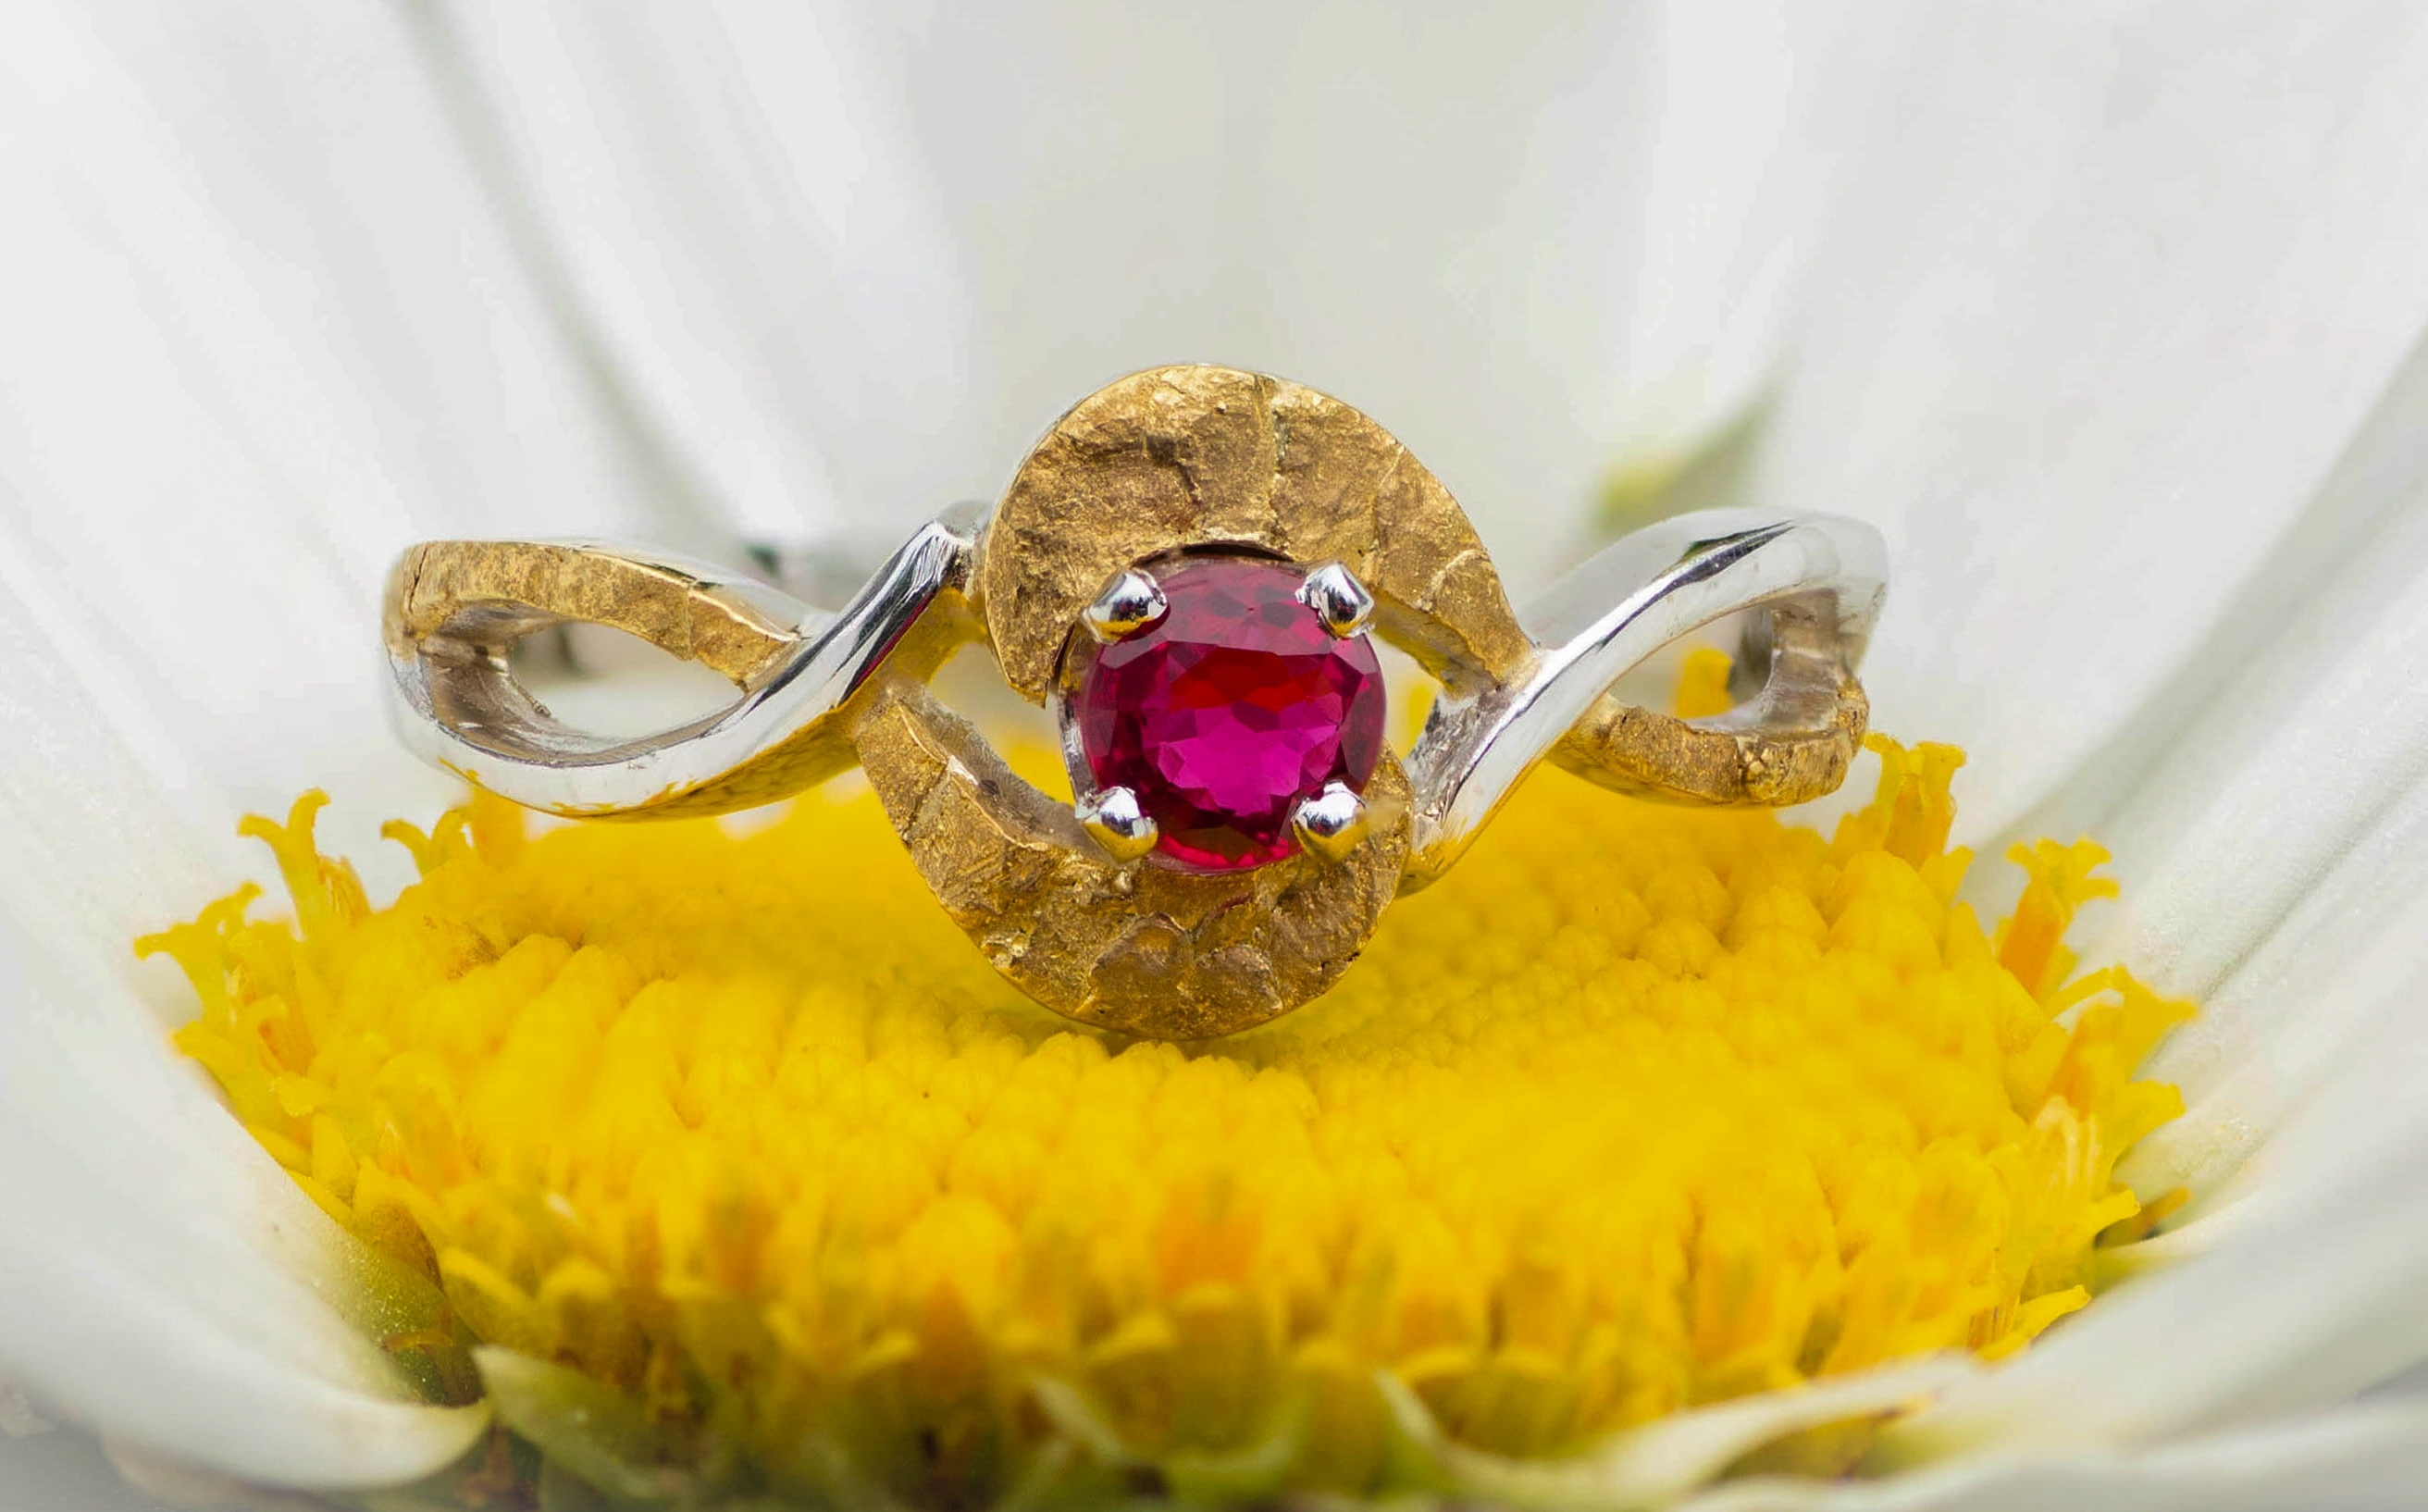 Gold Nuggets and Gemstone Rings